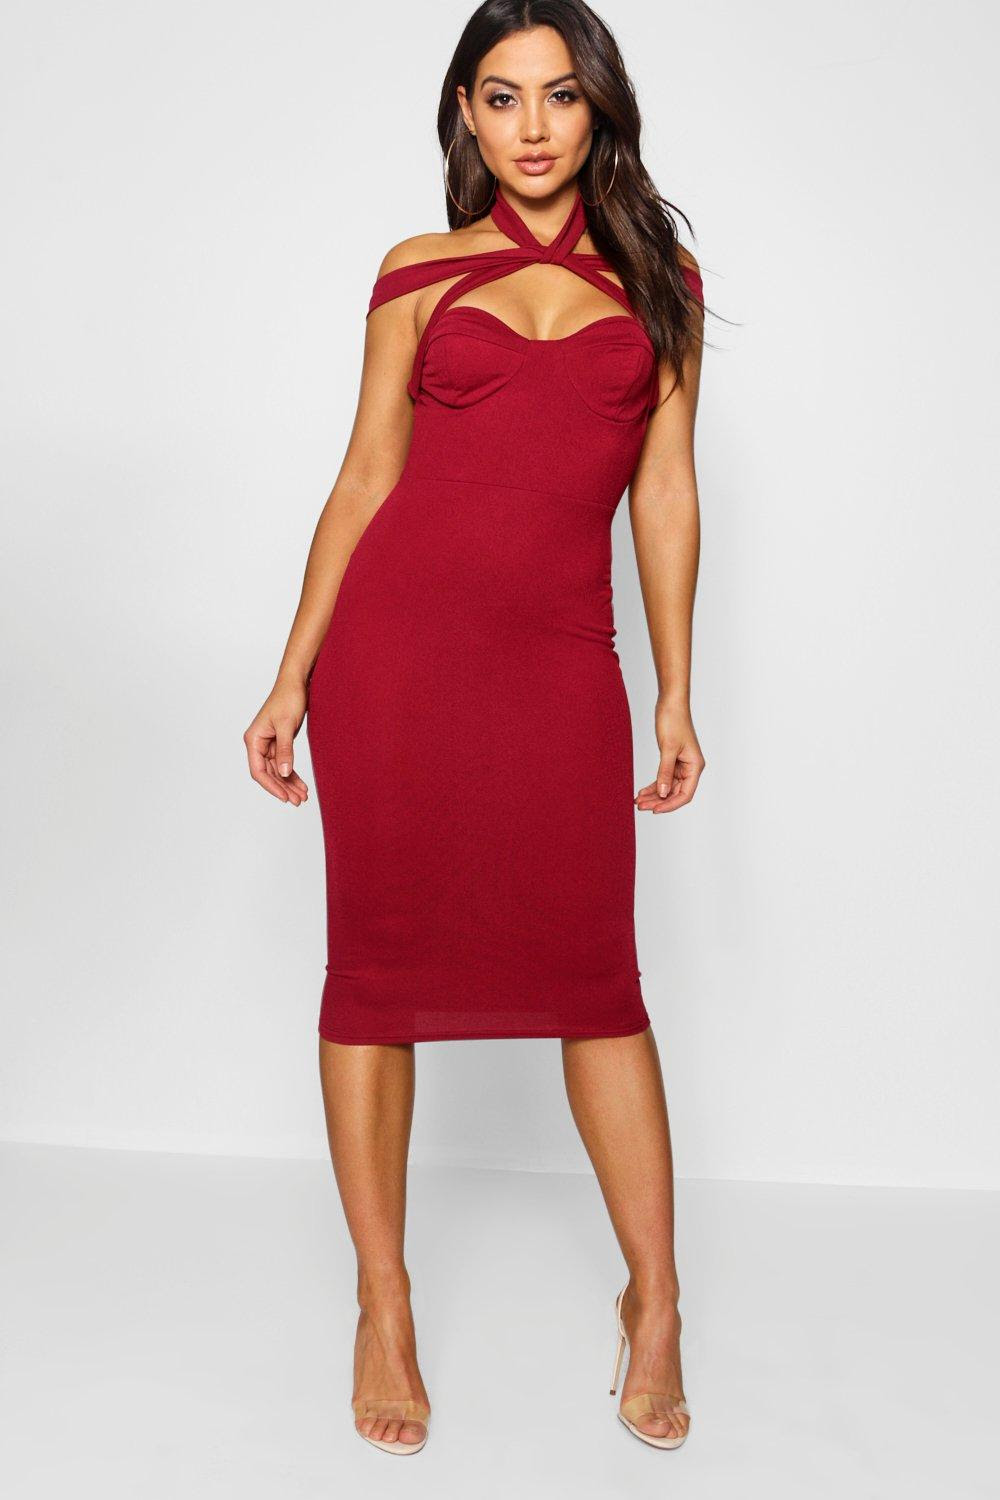 Boutique dresses to best stores buy bodycon repair tight